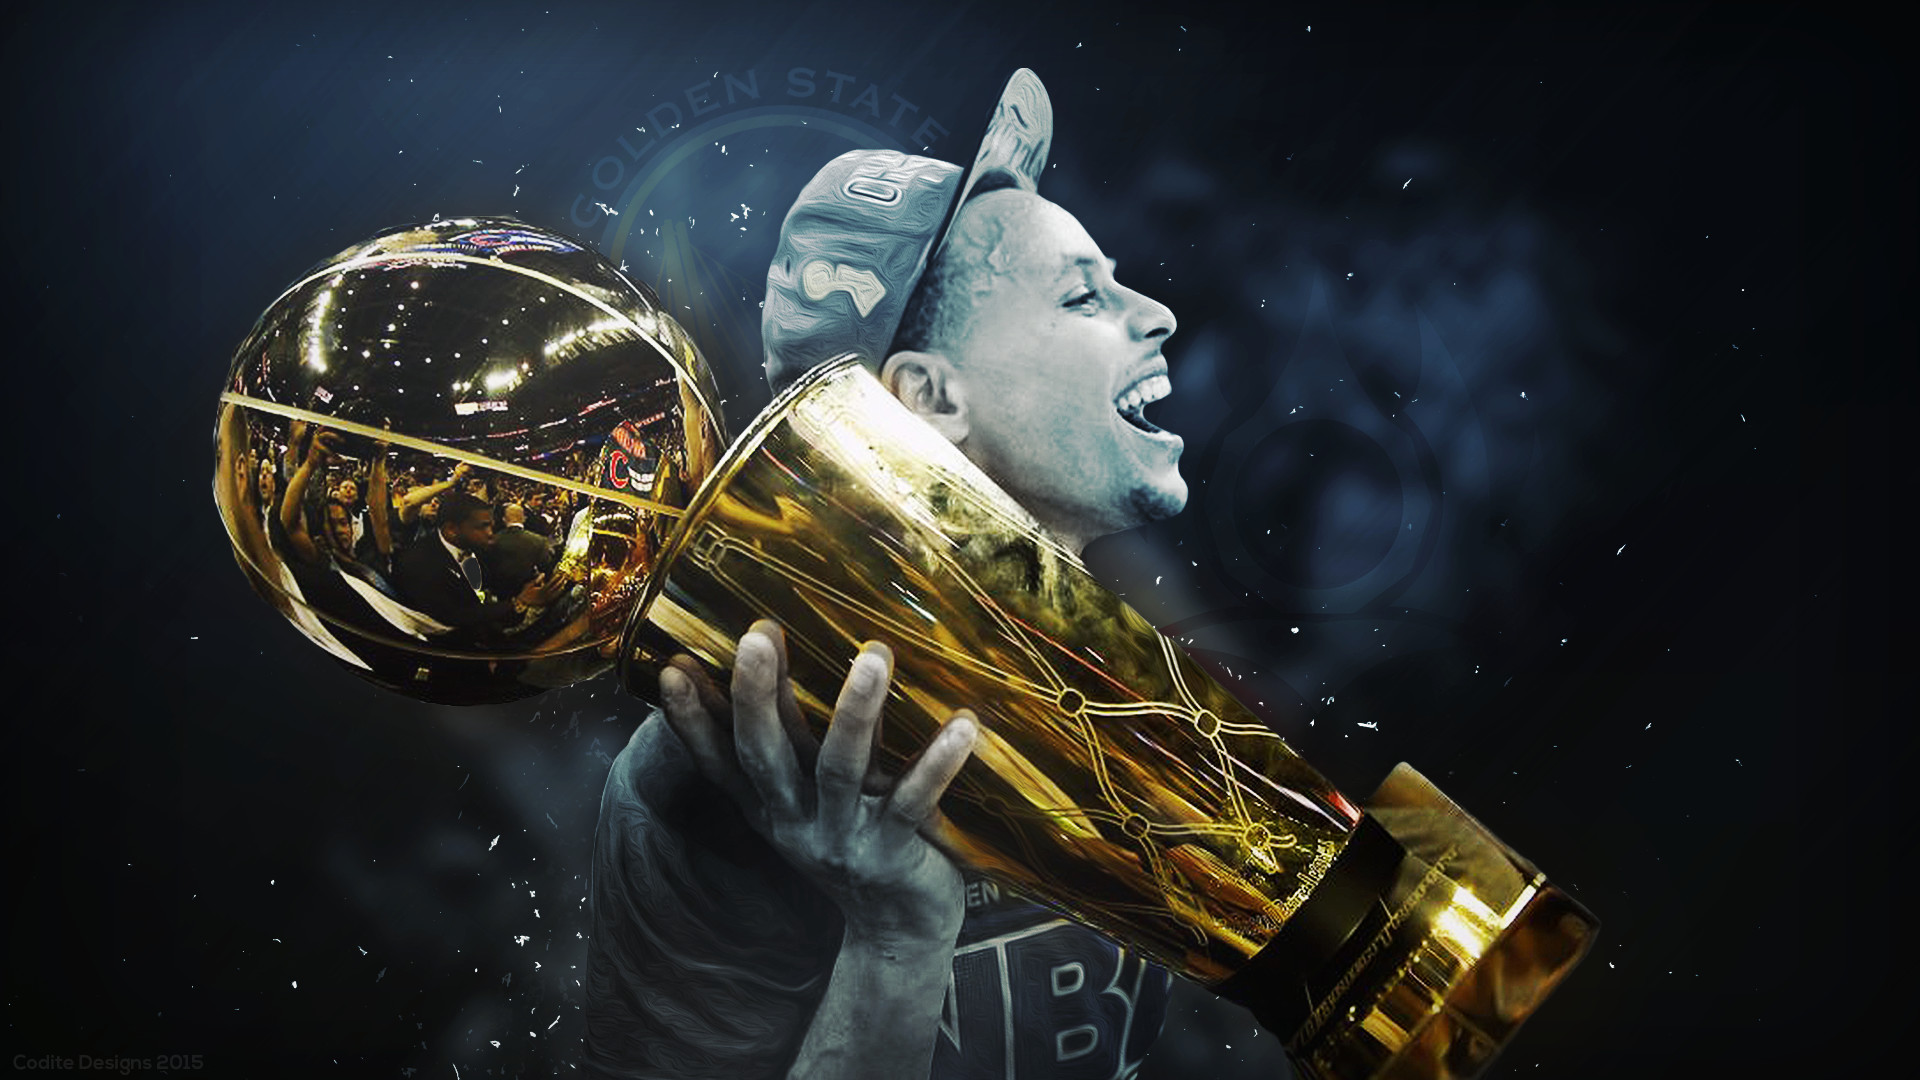 Stephen Curry Wallpaper Free Download | Wallpapers, Backgrounds … | look  at this | Pinterest | Stephen curry wallpaper, Curry wallpaper and Stephen  curry